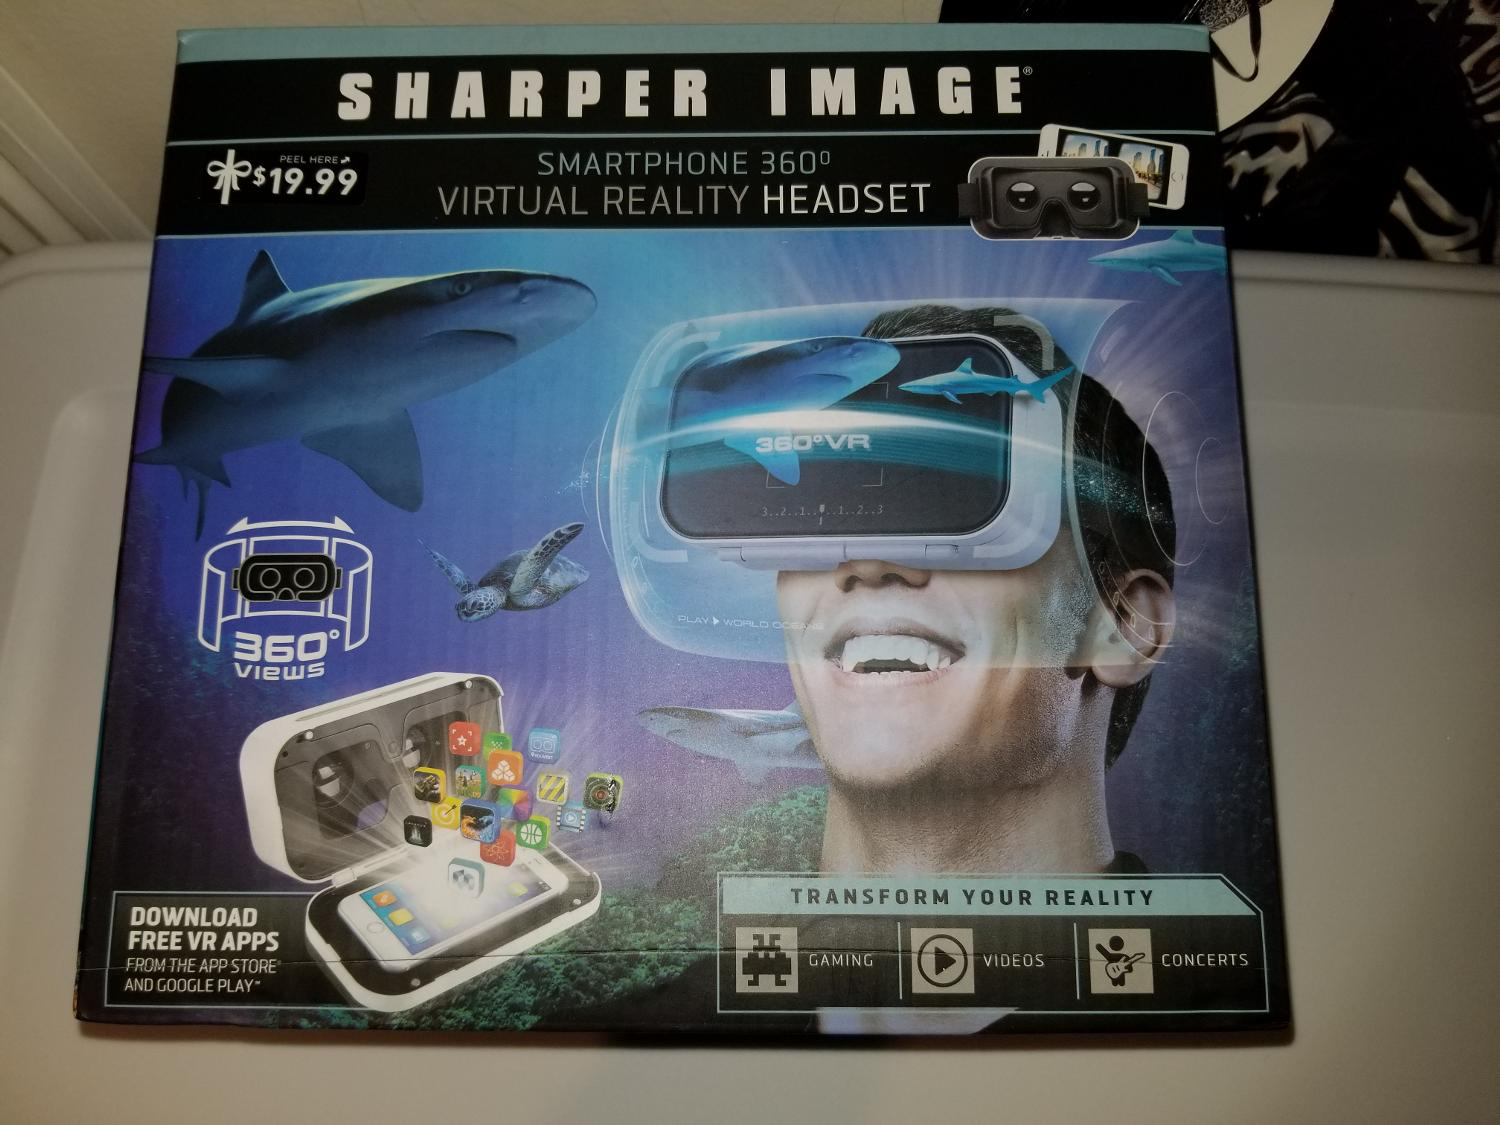 Best Sharper Image Virtual Reality Headset For Sale In Metairie